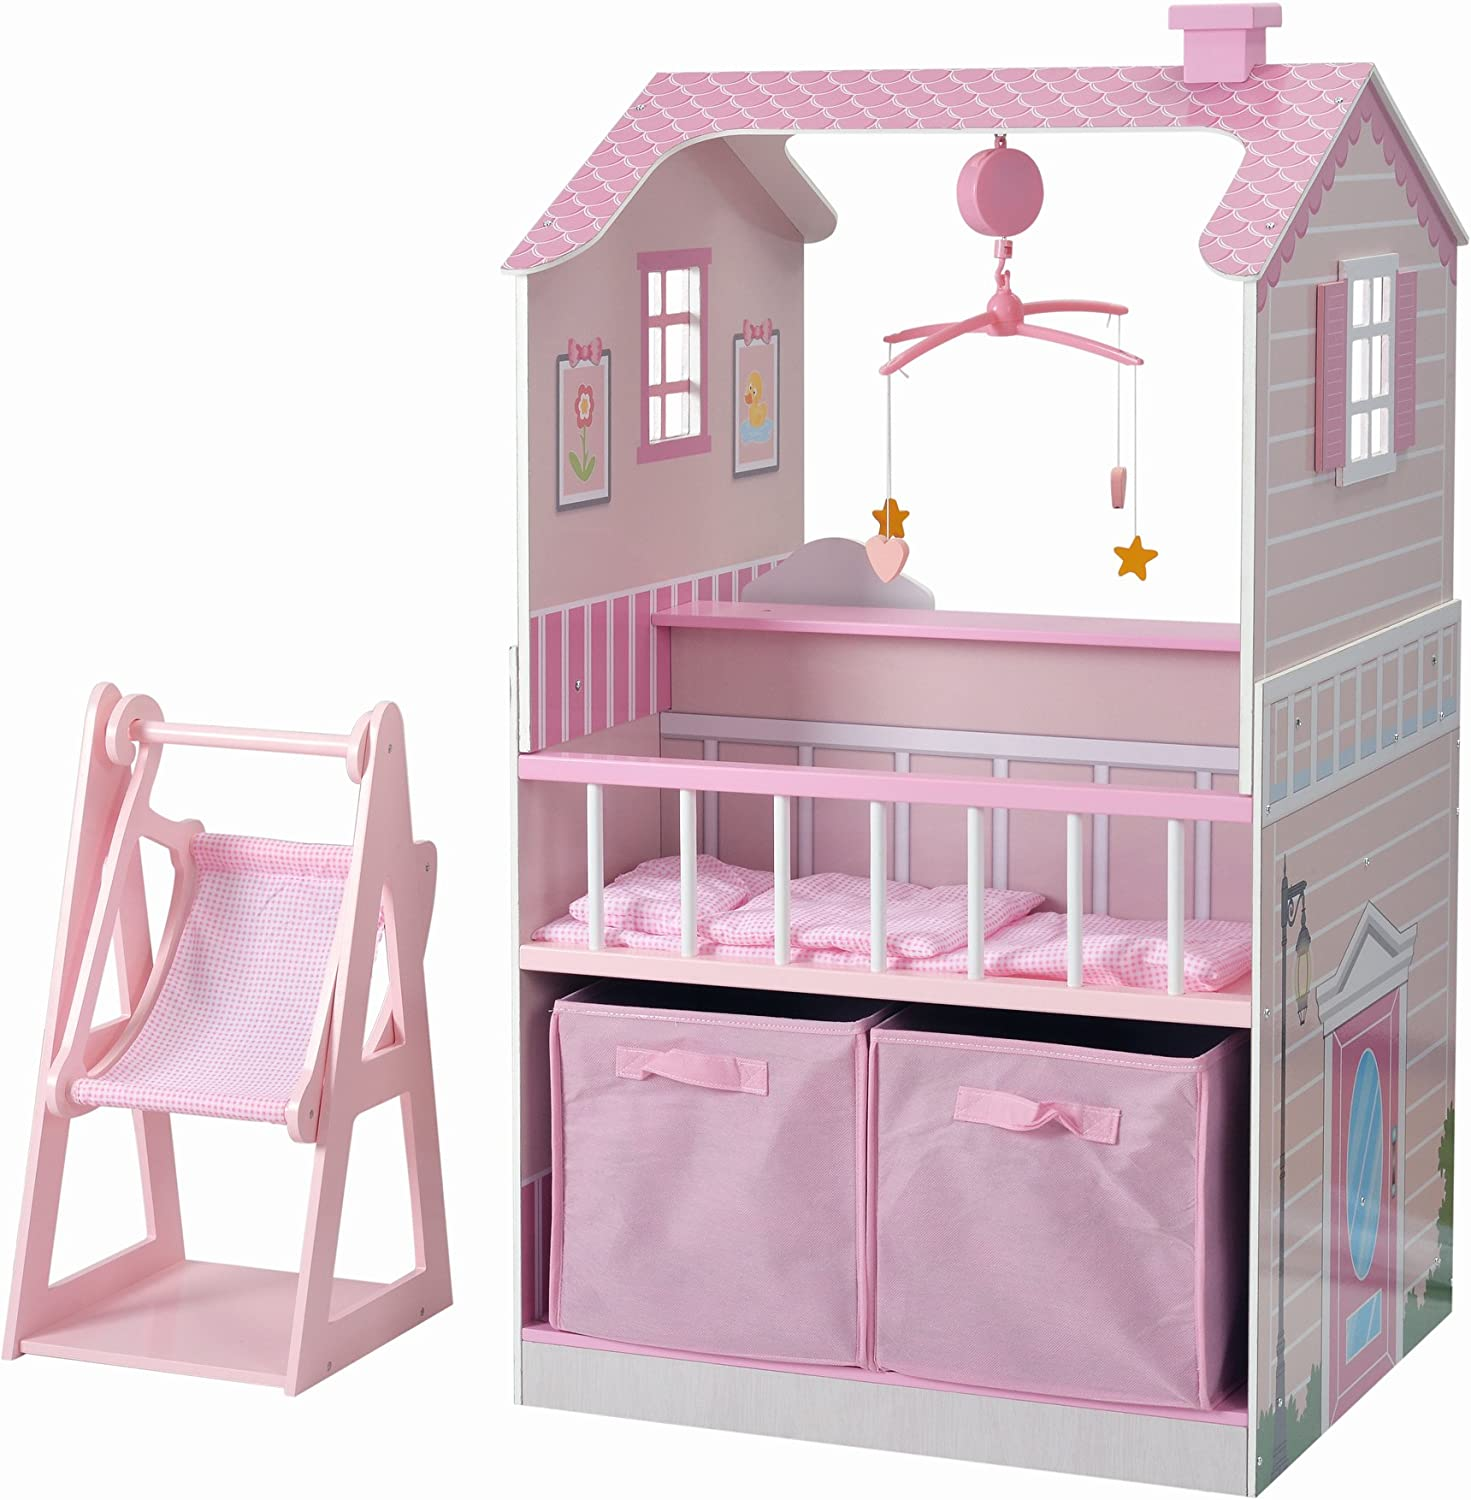 Teamson Kids All in One Baby Doll Nursery Station for Dolls Nursery Center, 18""